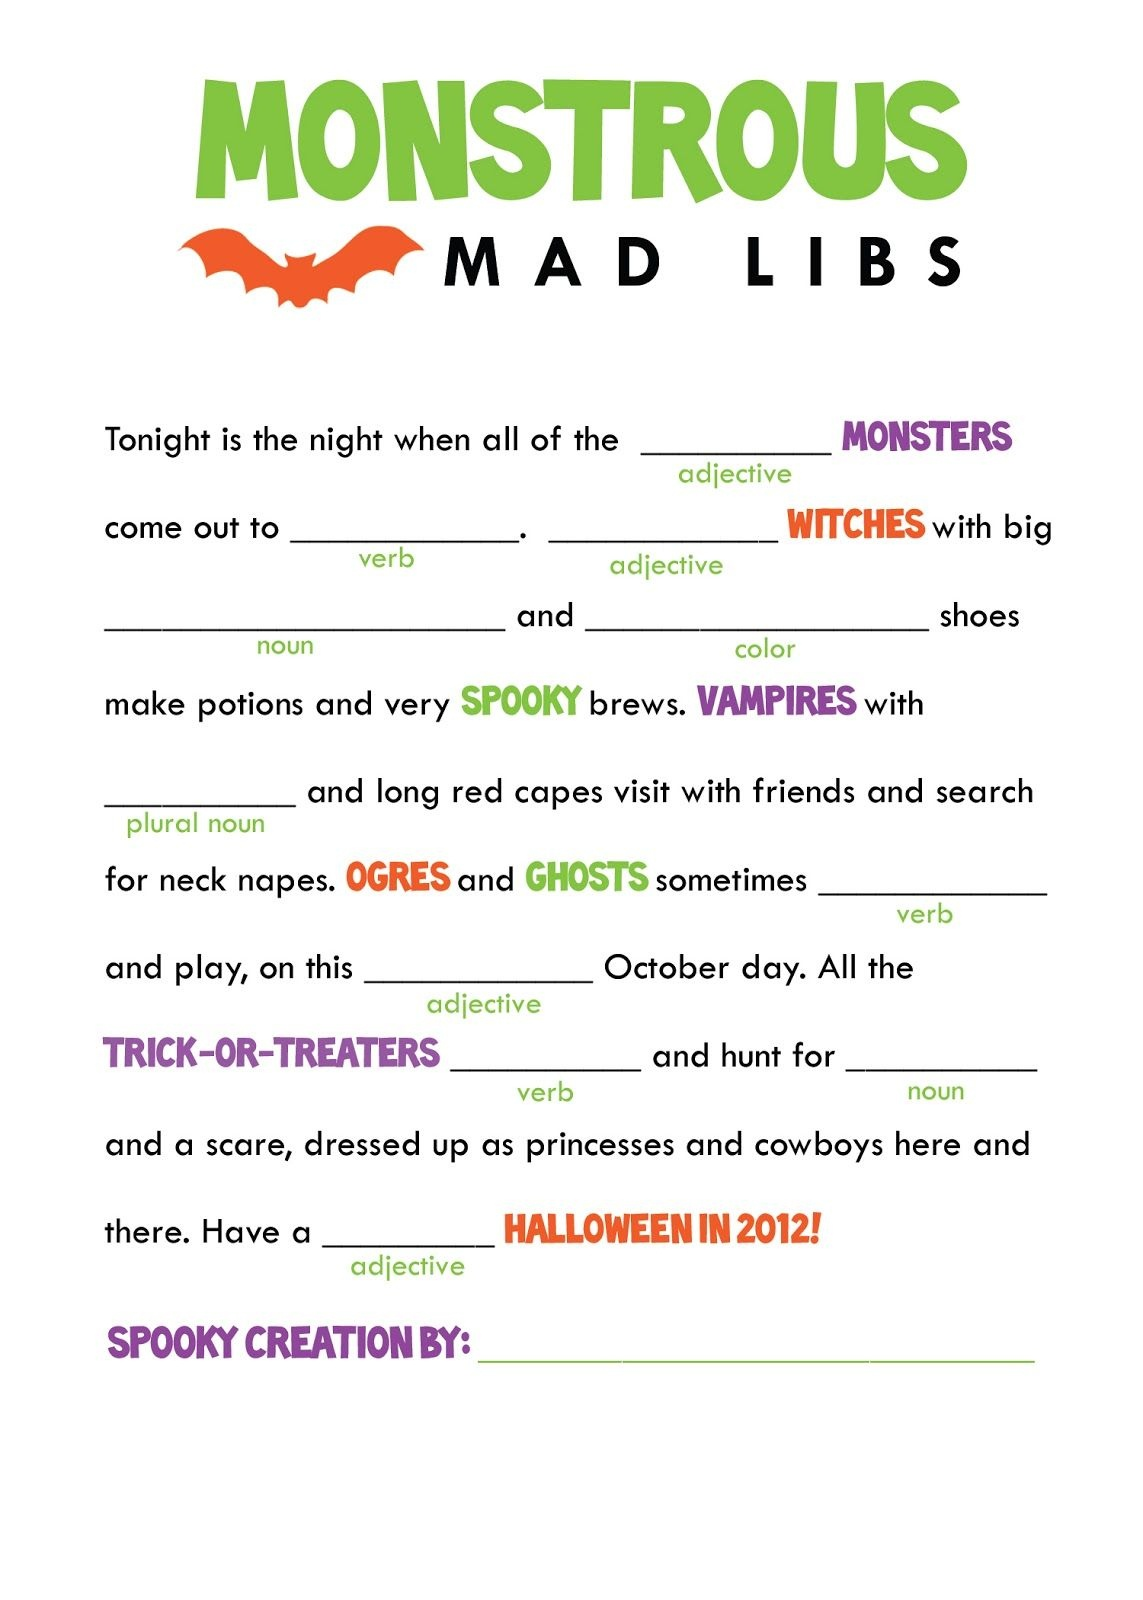 Kids Mad Libs Printable Free - Google Search | Classroom Party - Free Printable Mad Libs For Middle School Students